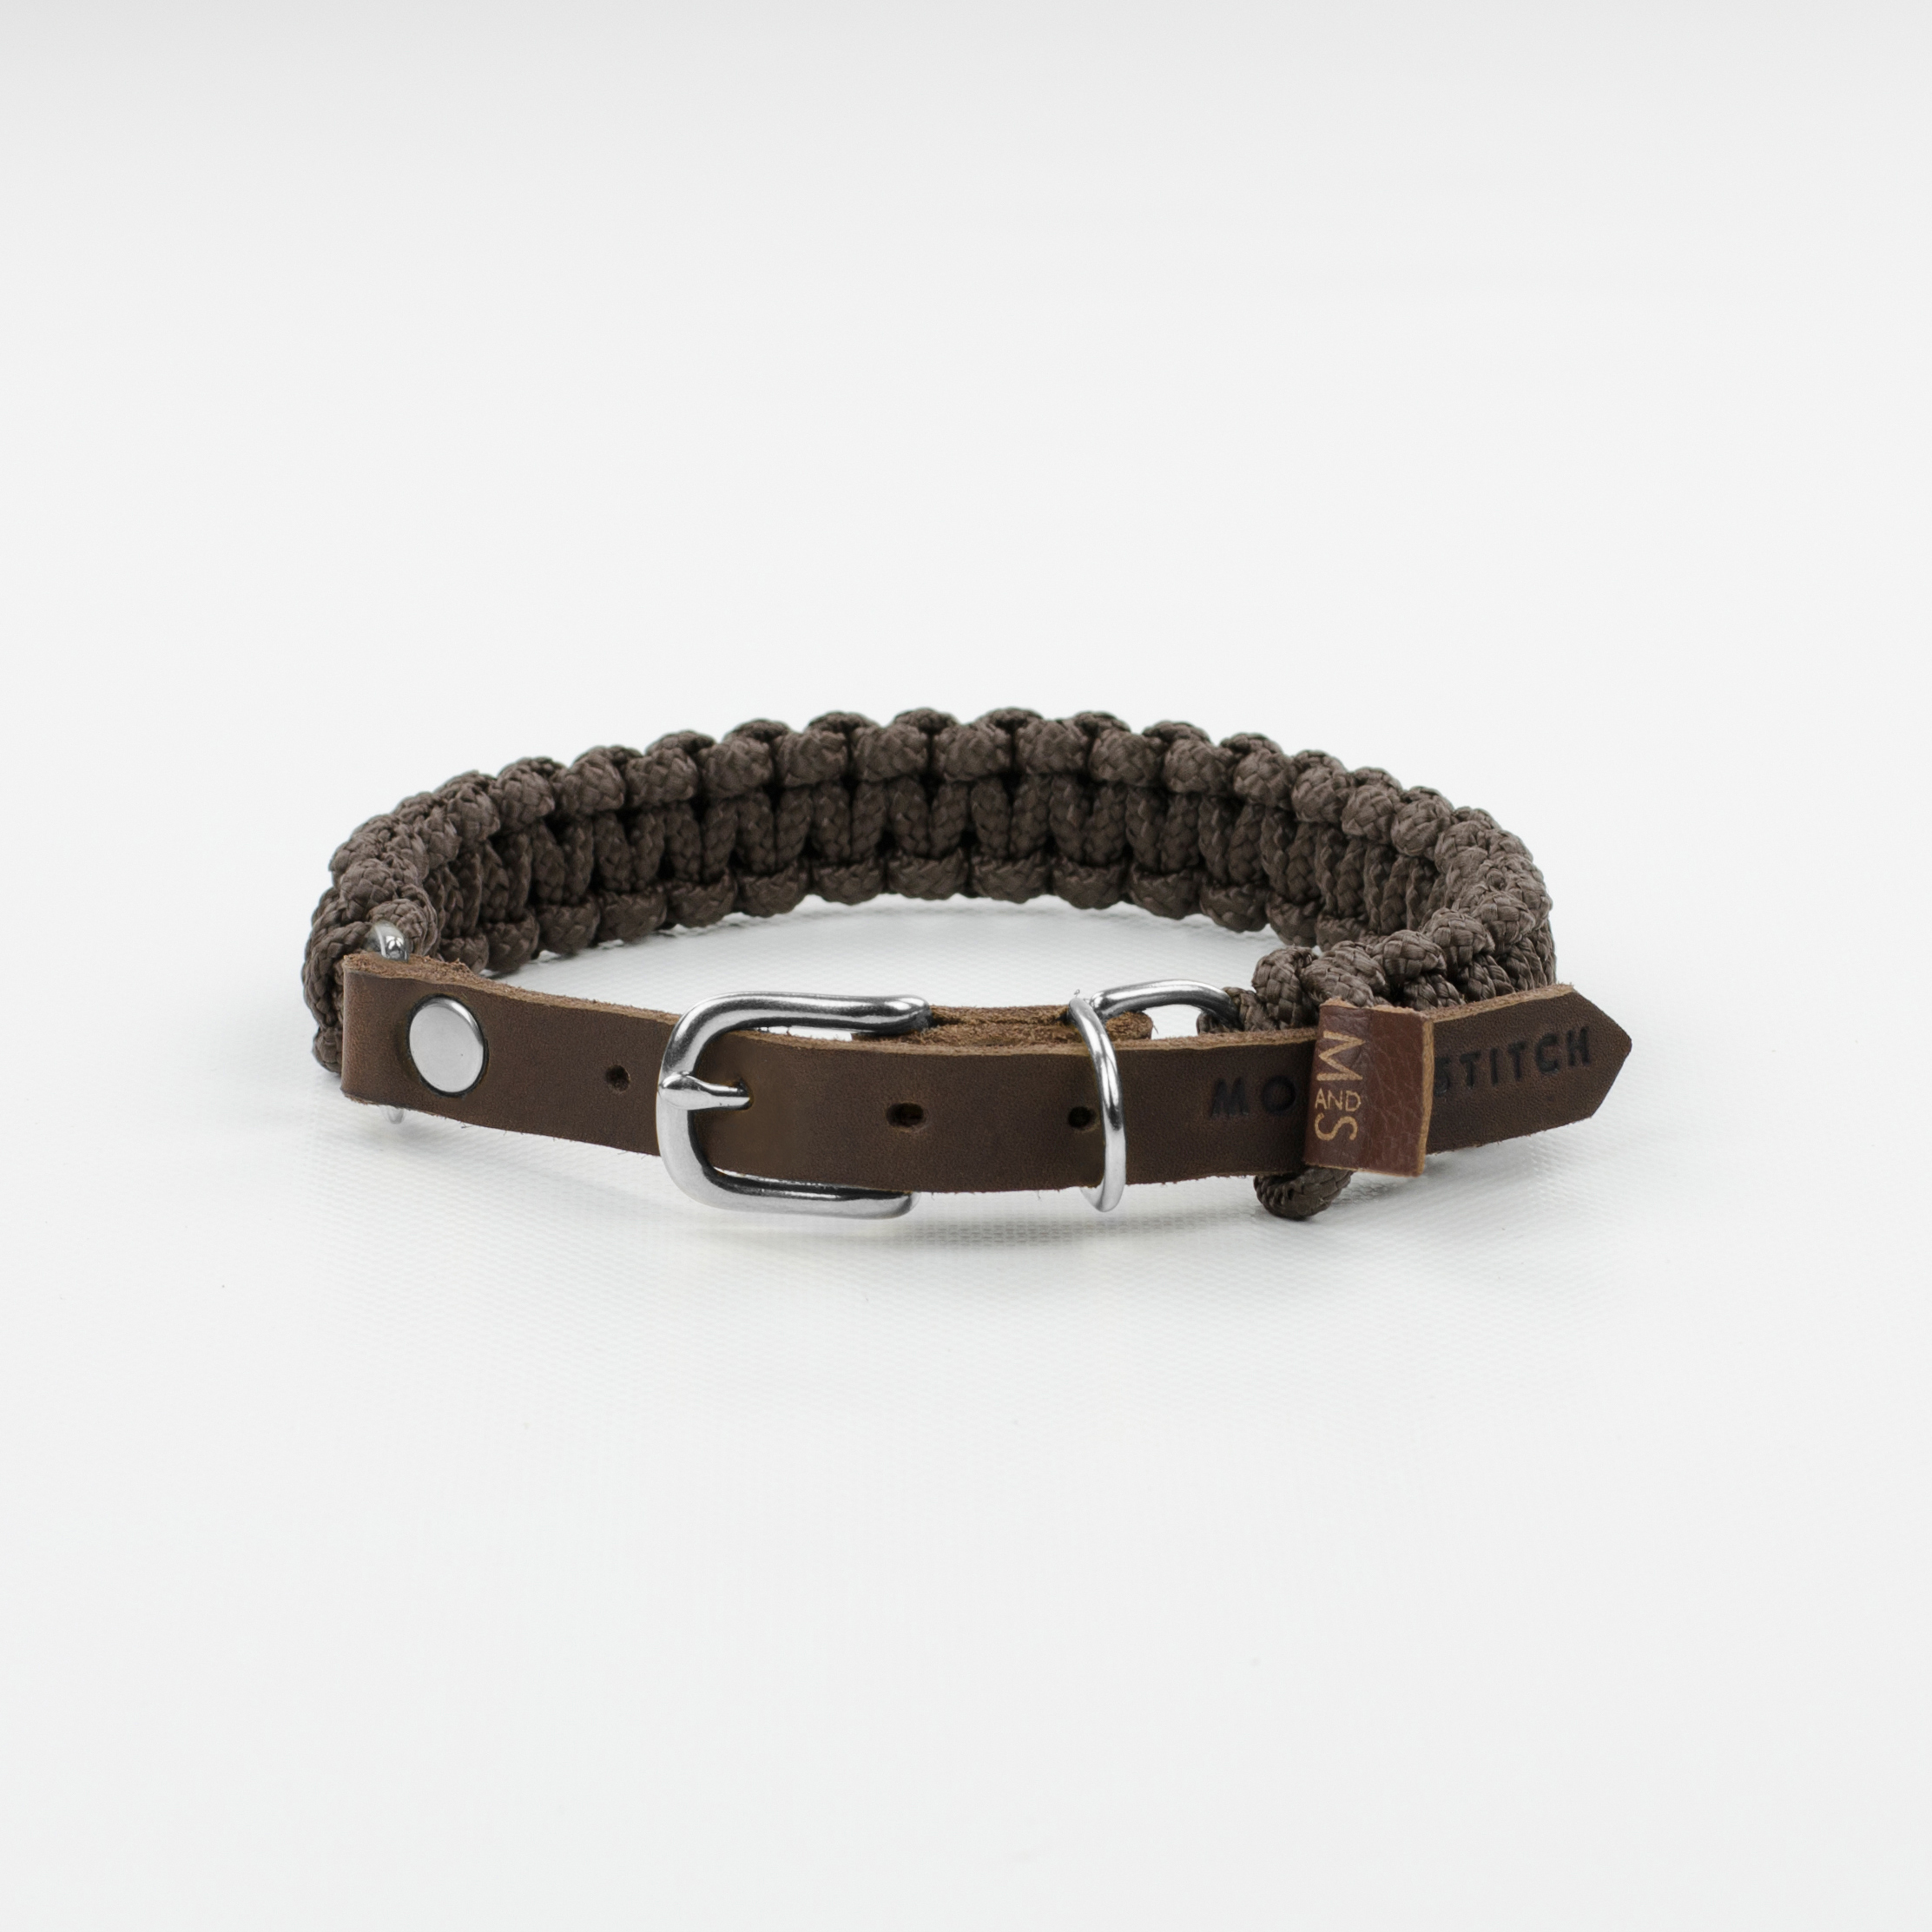 Hundehalsband silber touch-of-leather-dog-collar-chocolate (2)